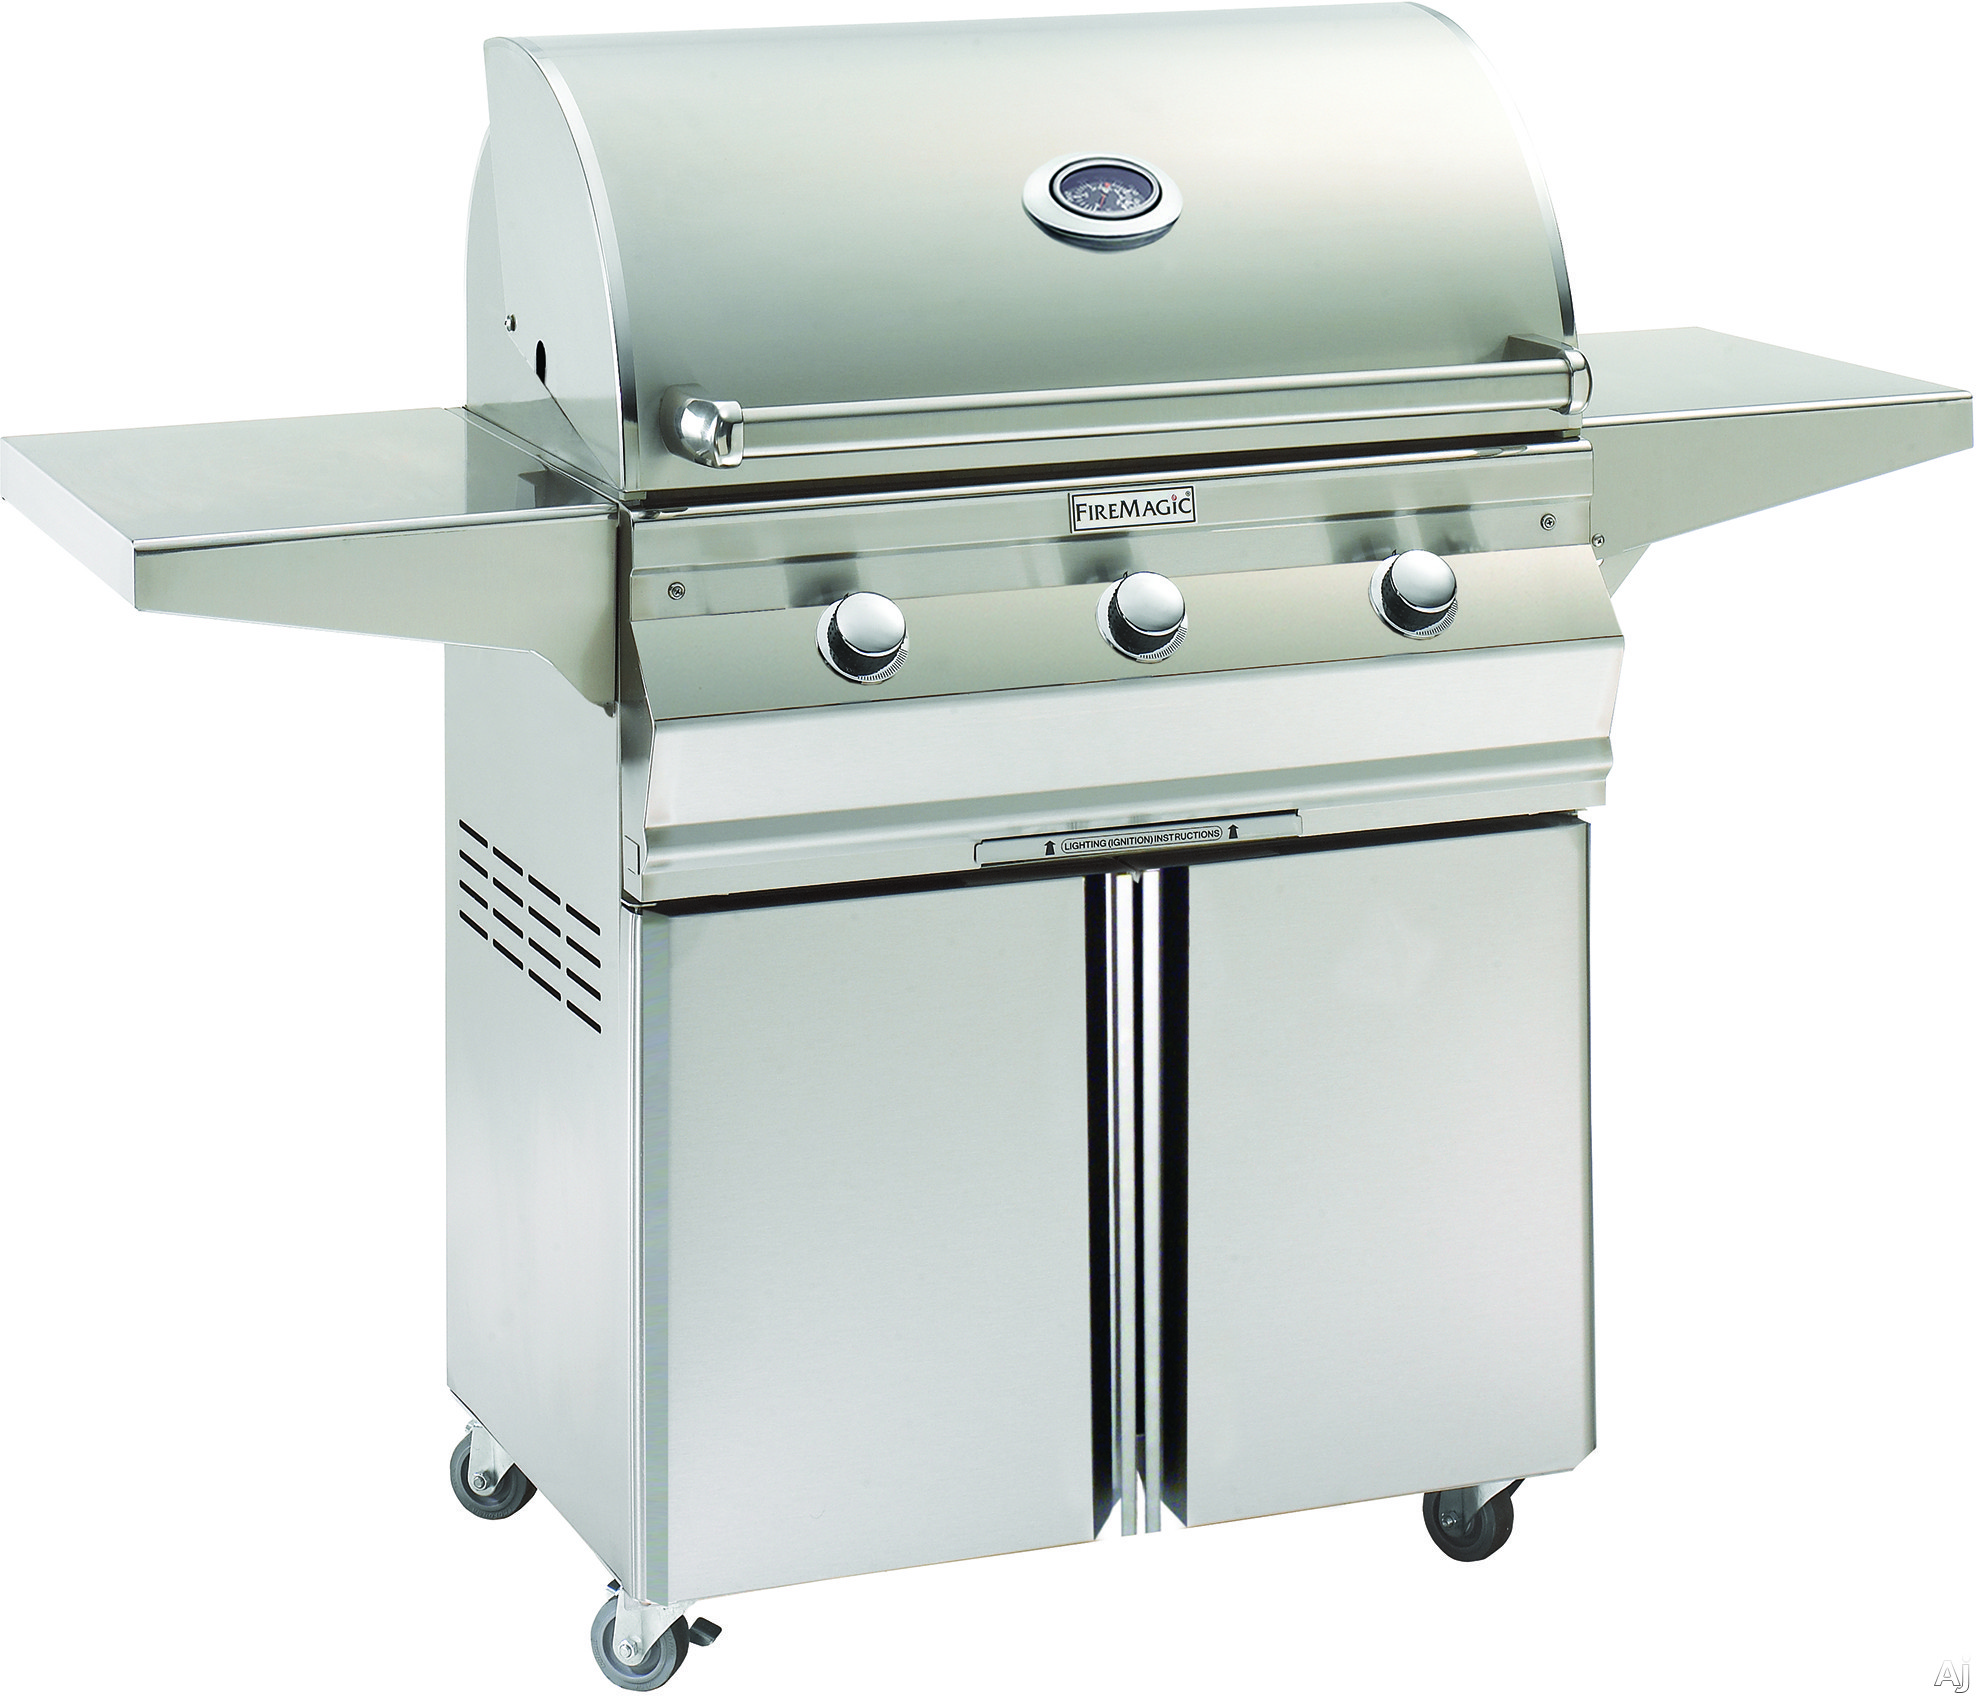 Image of Fire Magic Choice Collection C540S 58 Inch Freestanding Gas Grill with 540 sq. in. Cooking Surface, 60,000 BTU, Stainless Steel Burners, Stainless Steel Flavor Grids and Analog Thermometer